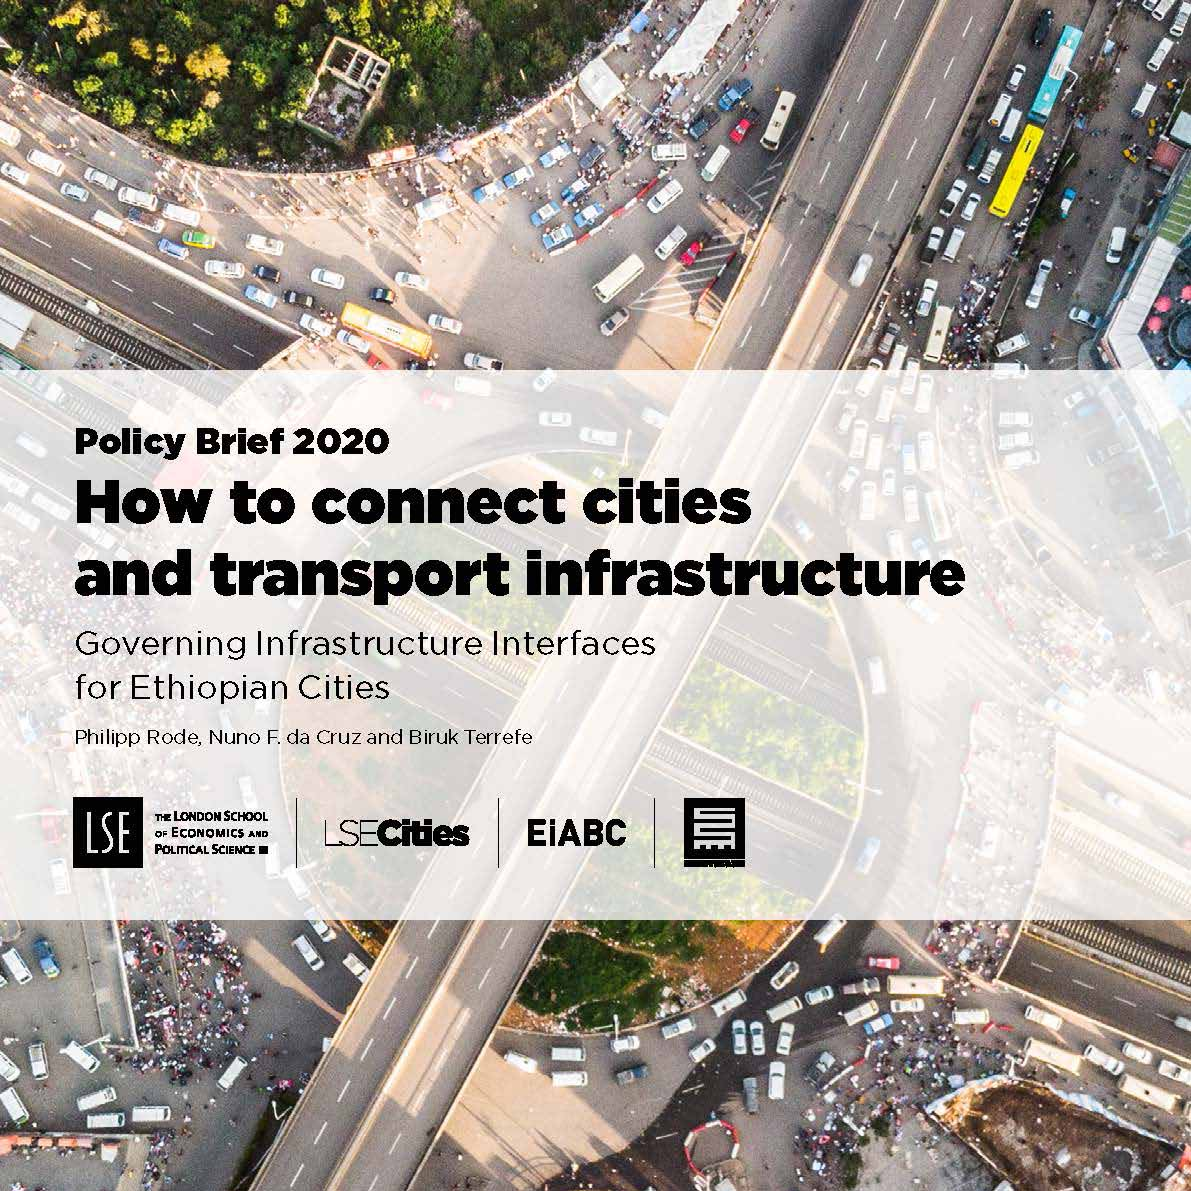 Policy-Brief-2020-How-to-connect-cities-and-transport-infrastructure-600x600